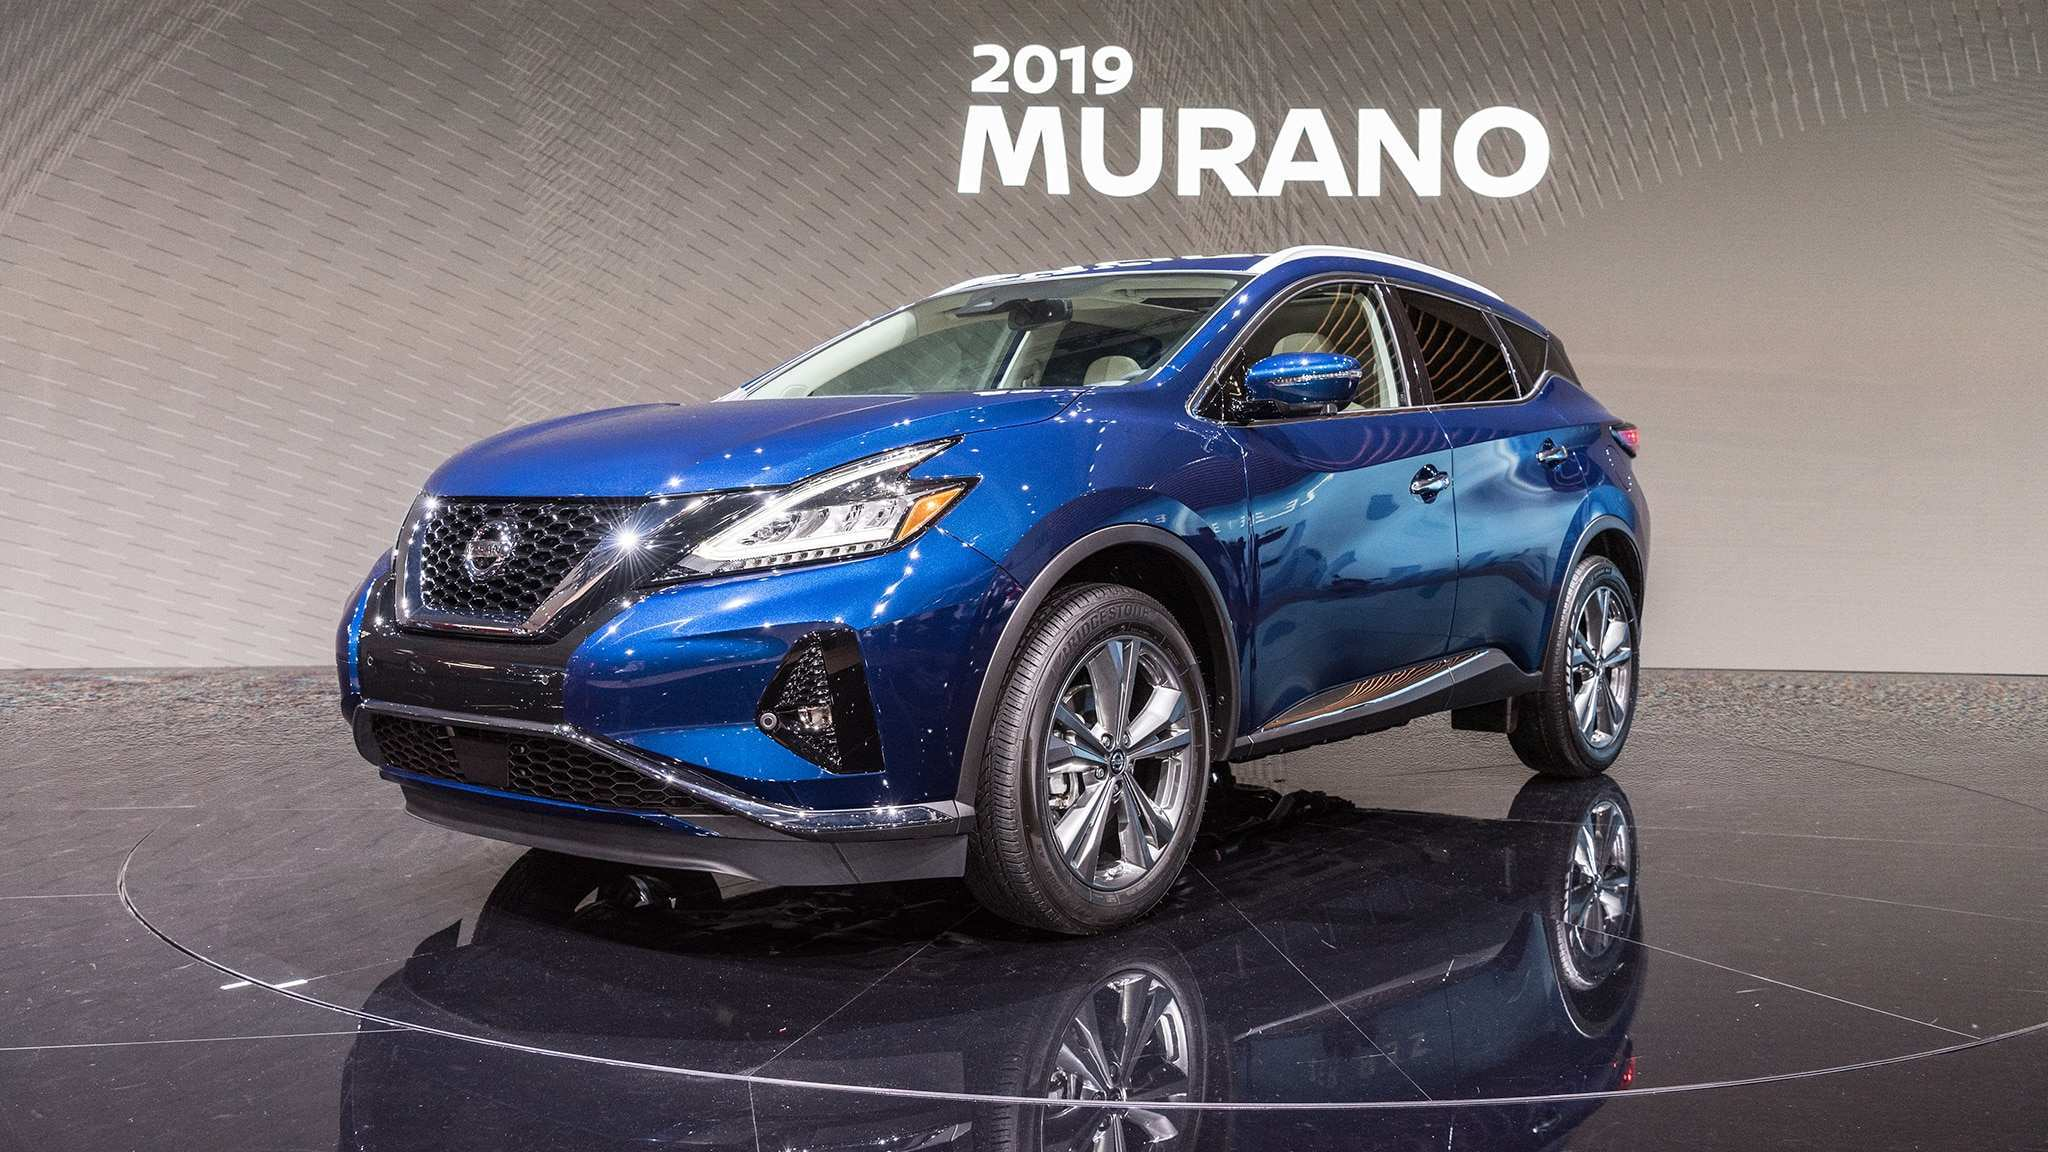 97 Gallery of New Murano Nissan 2019 Picture Specs and Review with New Murano Nissan 2019 Picture